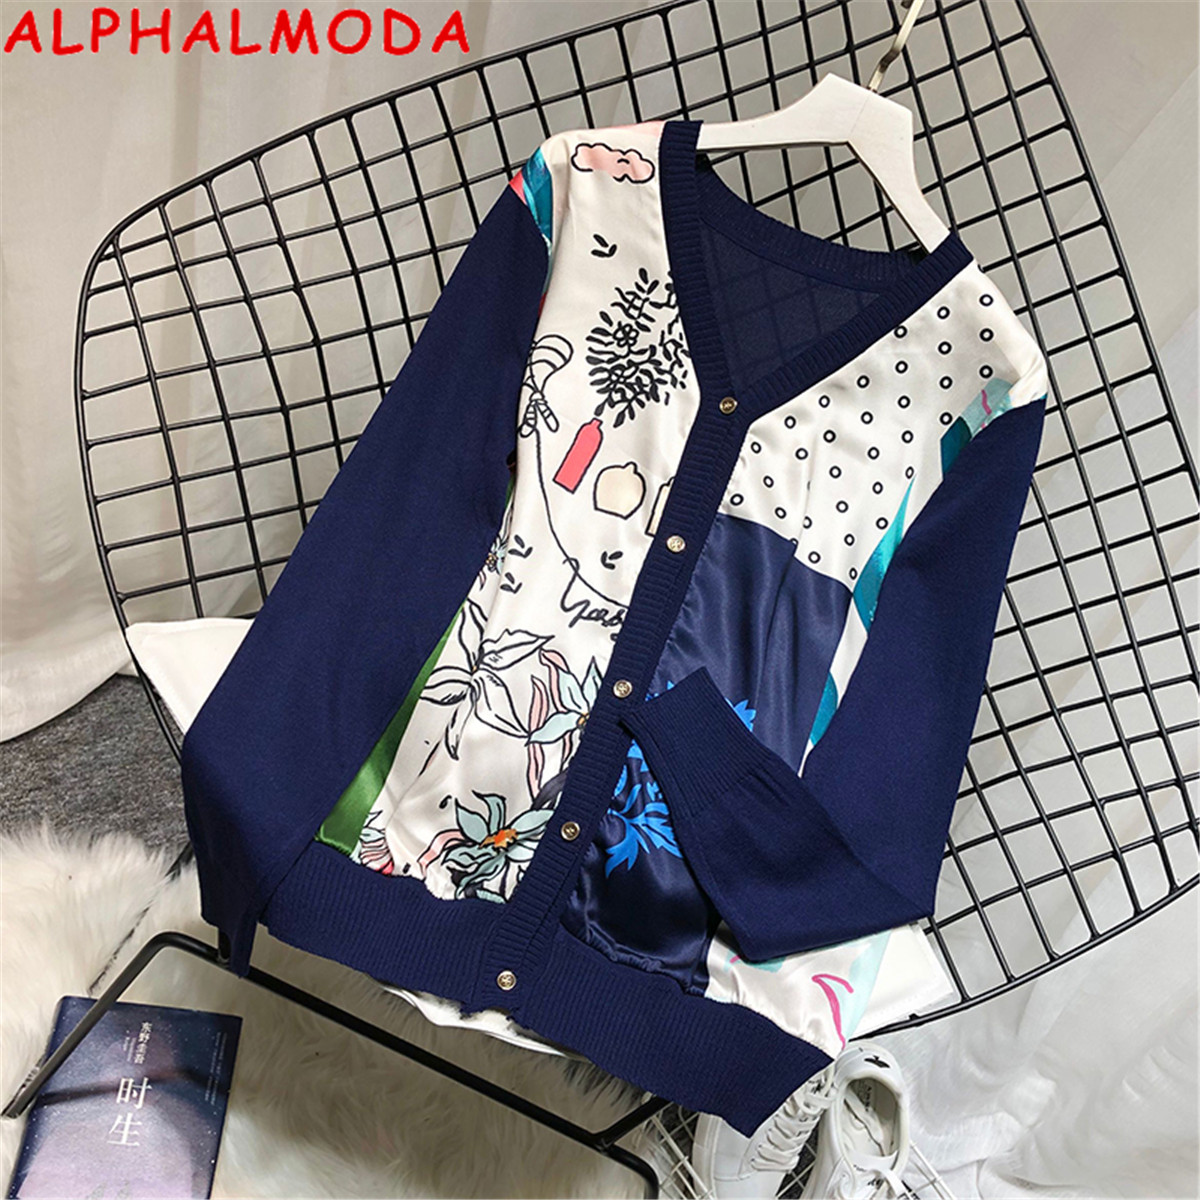 ALPHALMODA European V-neck Satin Print Sweater Patchwork Knitted Faux Single Breasted Pullover Autumn Long-sleeved Fashion Top